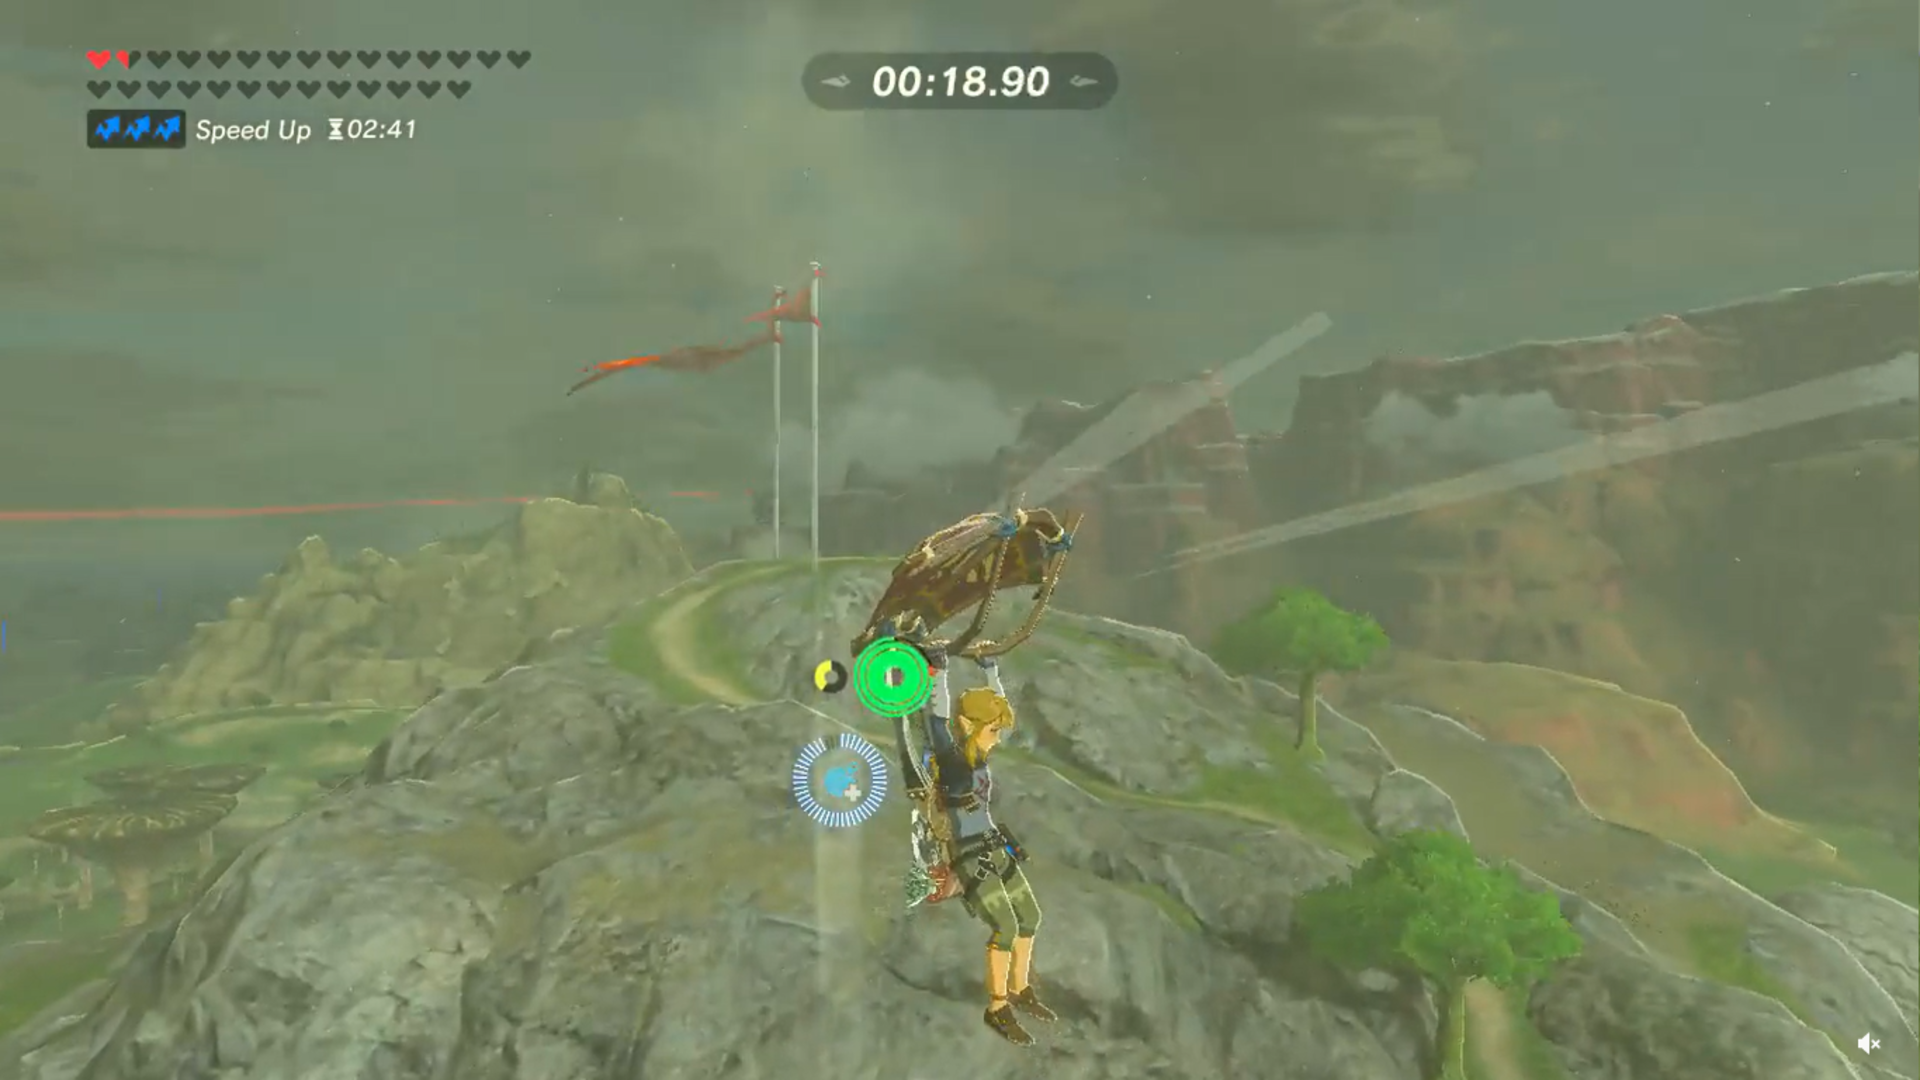 Breath of the Wild Mount Rhoam footrace completed in 23 seconds using clever bomb hack